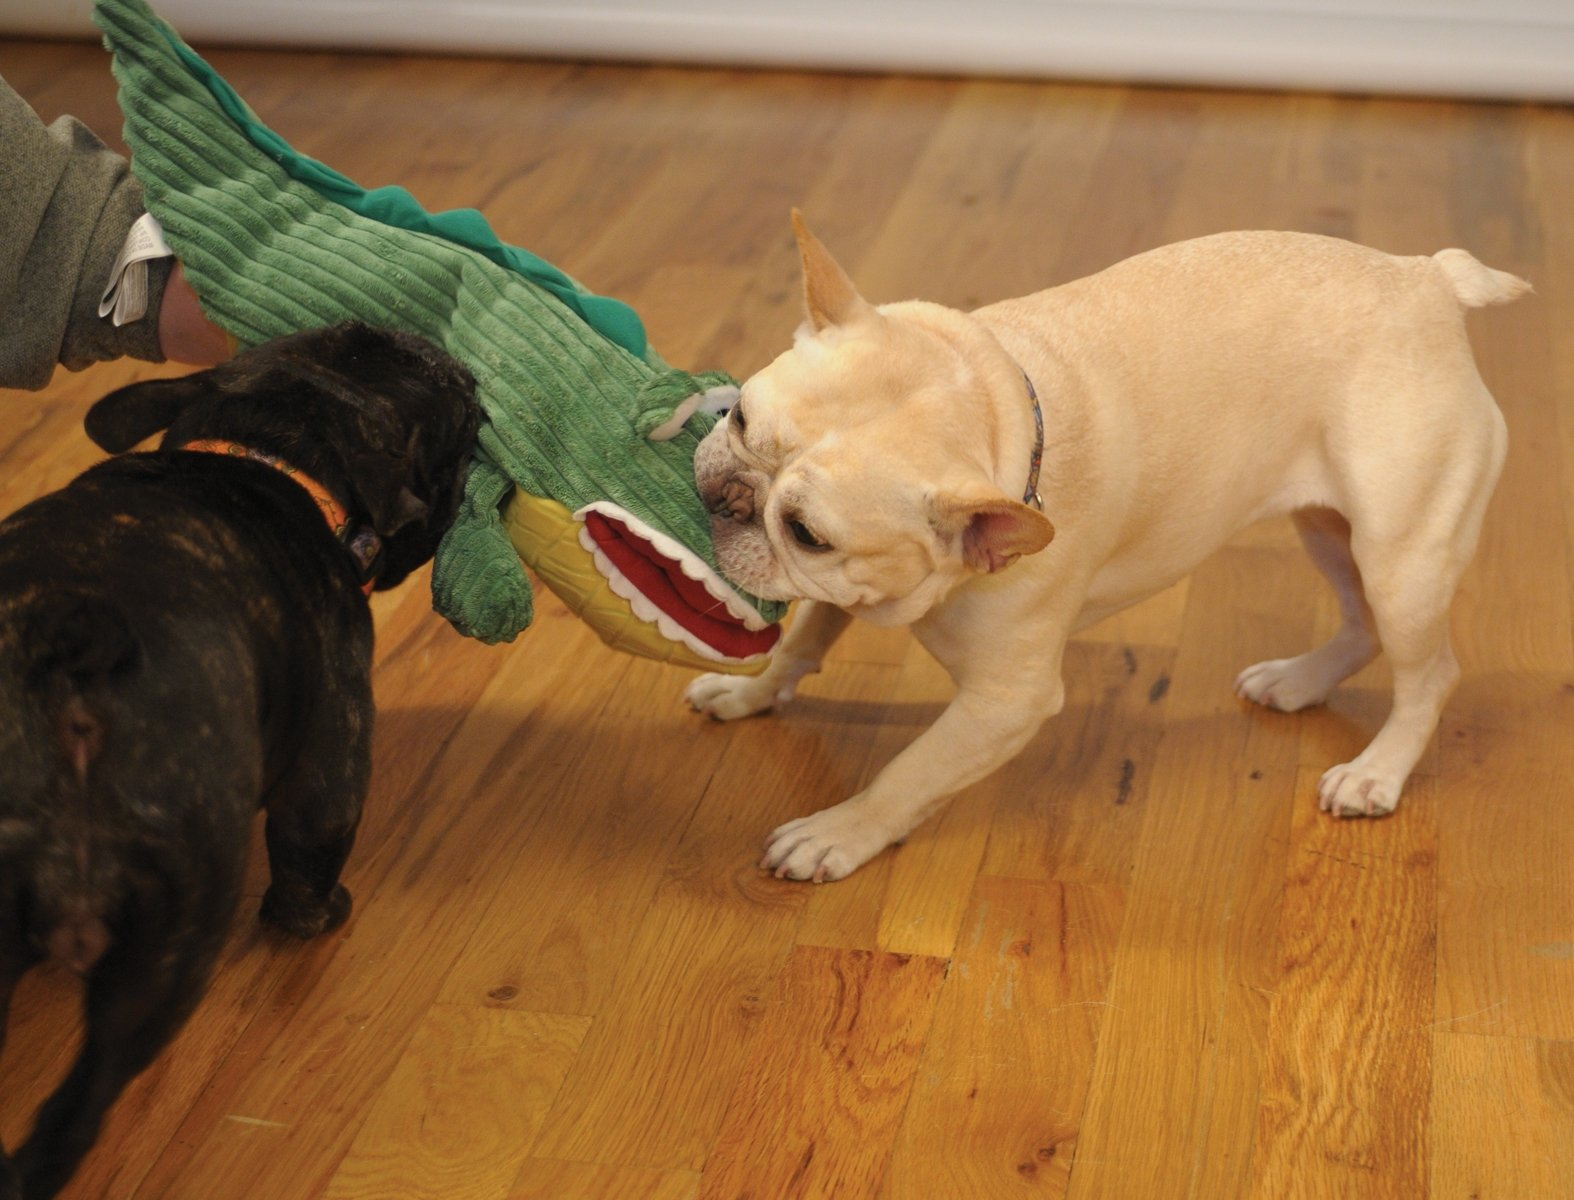 HuggleHounds Plush ,Extremely Durable and Squeaky Hand Puppet, Big Billy The Gator, Dog Toy Puppet , Large by HuggleHounds